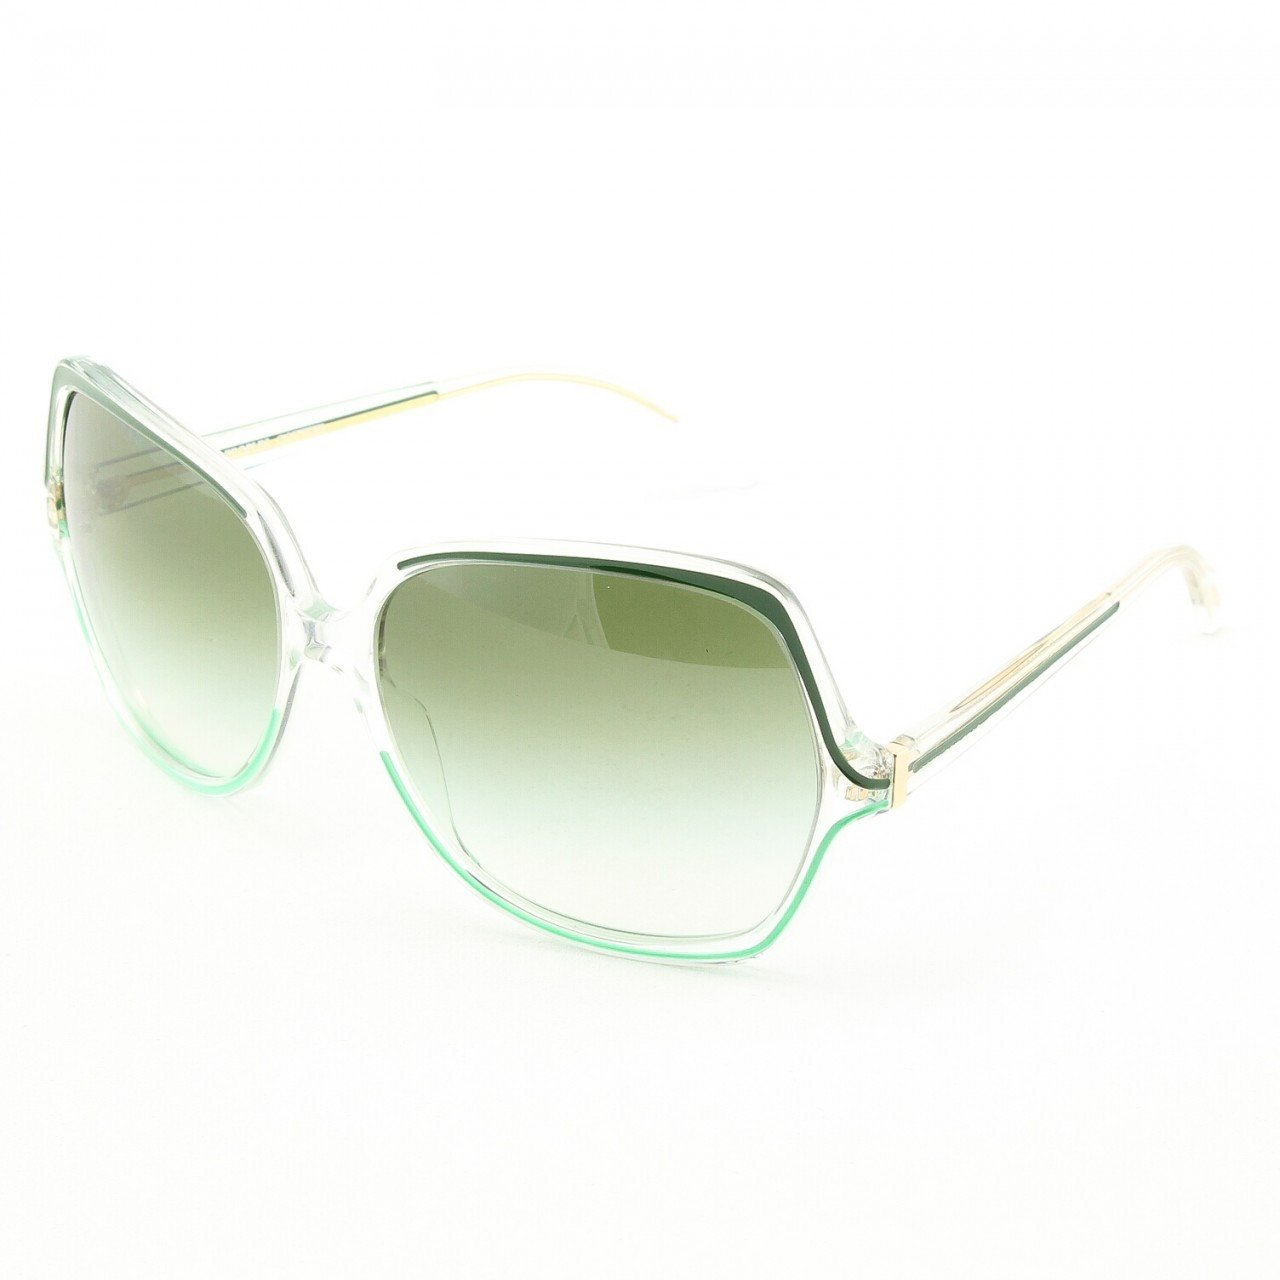 Oliver Peoples Nicola 5109S Sunglasses Col. 1057/8E Crystal Willow with Green Gradient Lenses